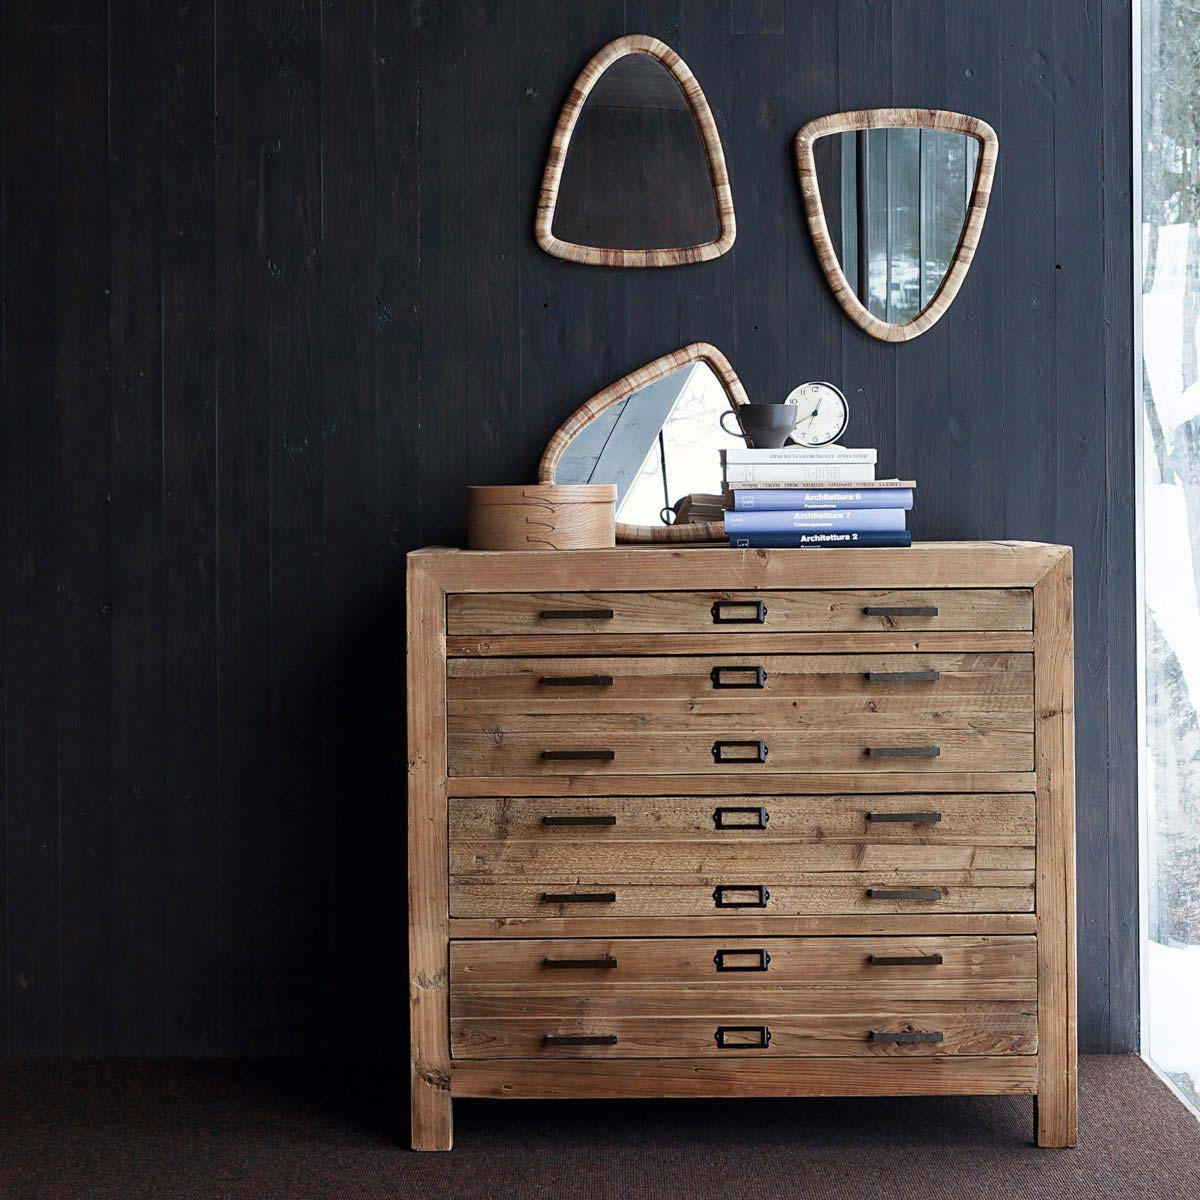 commode en bois brut par am pm. Black Bedroom Furniture Sets. Home Design Ideas